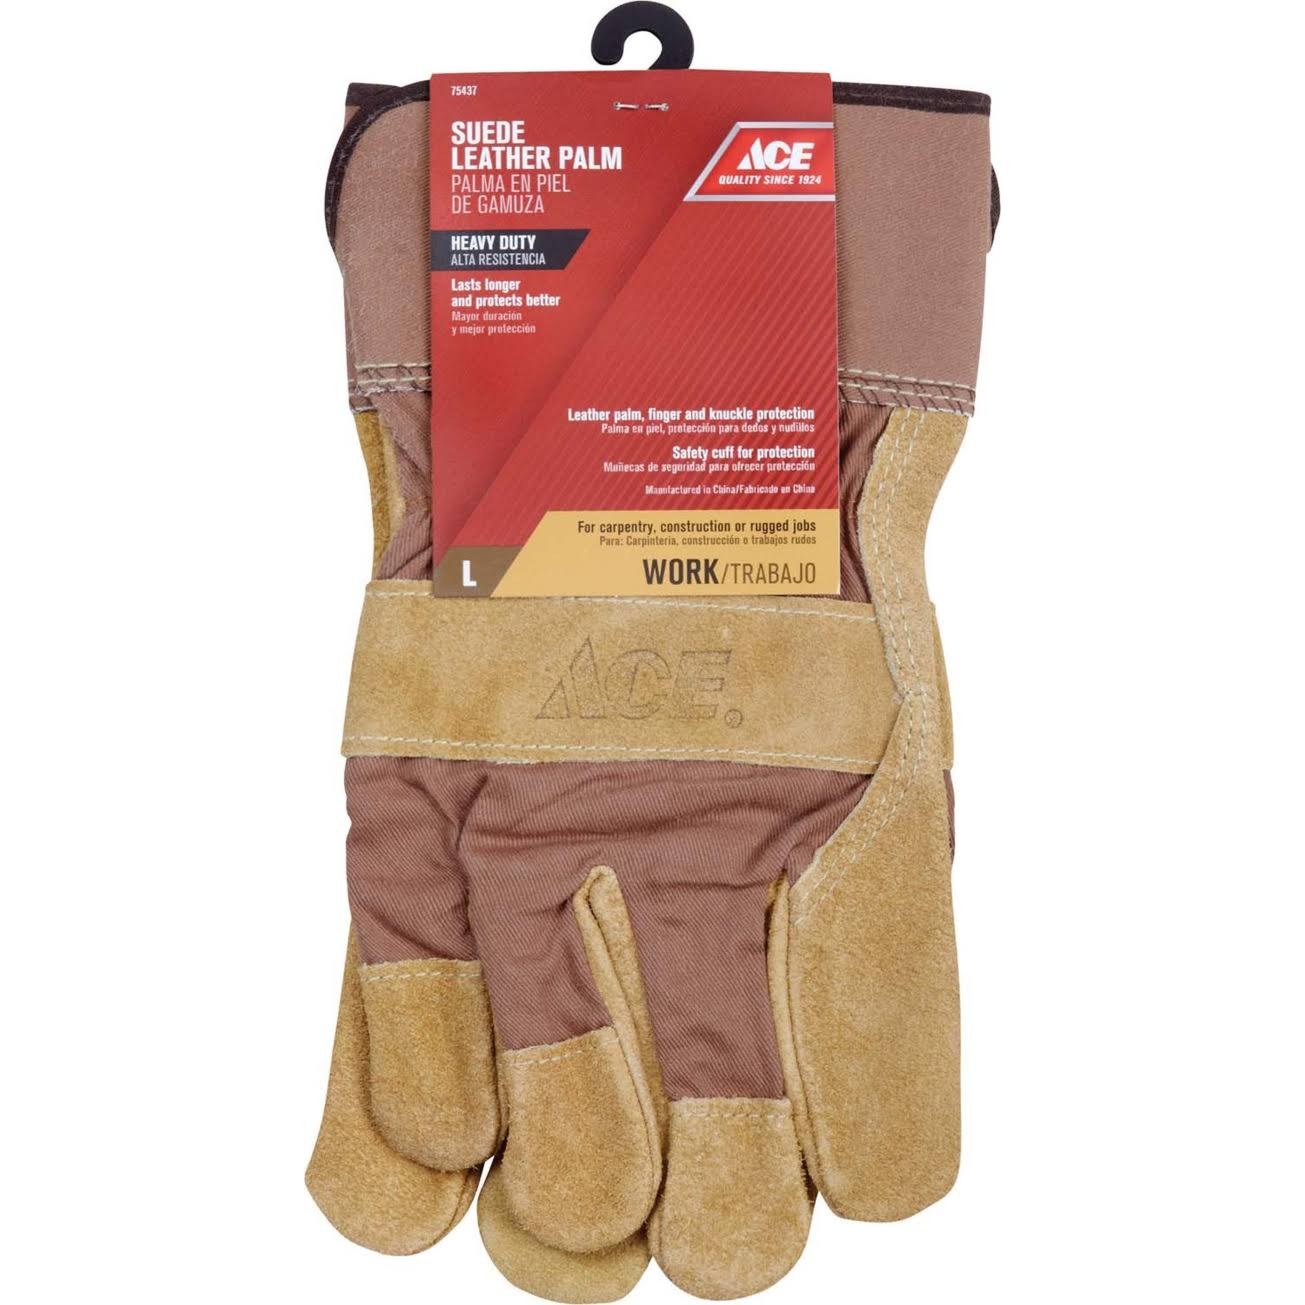 Ace Hardware Suede Leather Palm Gloves